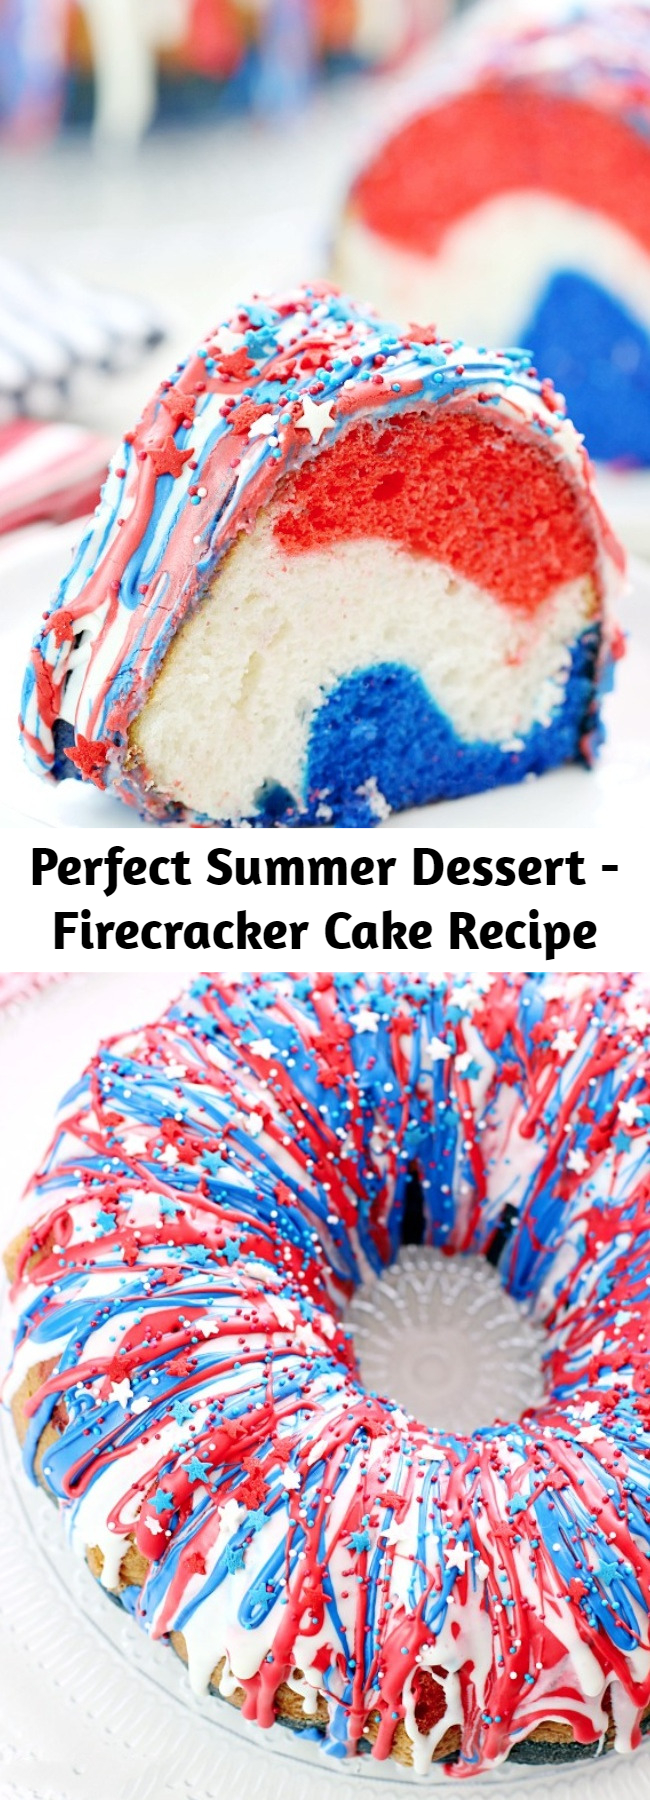 Perfect Summer Dessert - Firecracker Cake Recipe - Show your patriotism with this Firecracker Cake! The red, white, and blue runs inside and out!! Great for Memorial Day, the 4th of July or any occasion you want to share a little American pride!